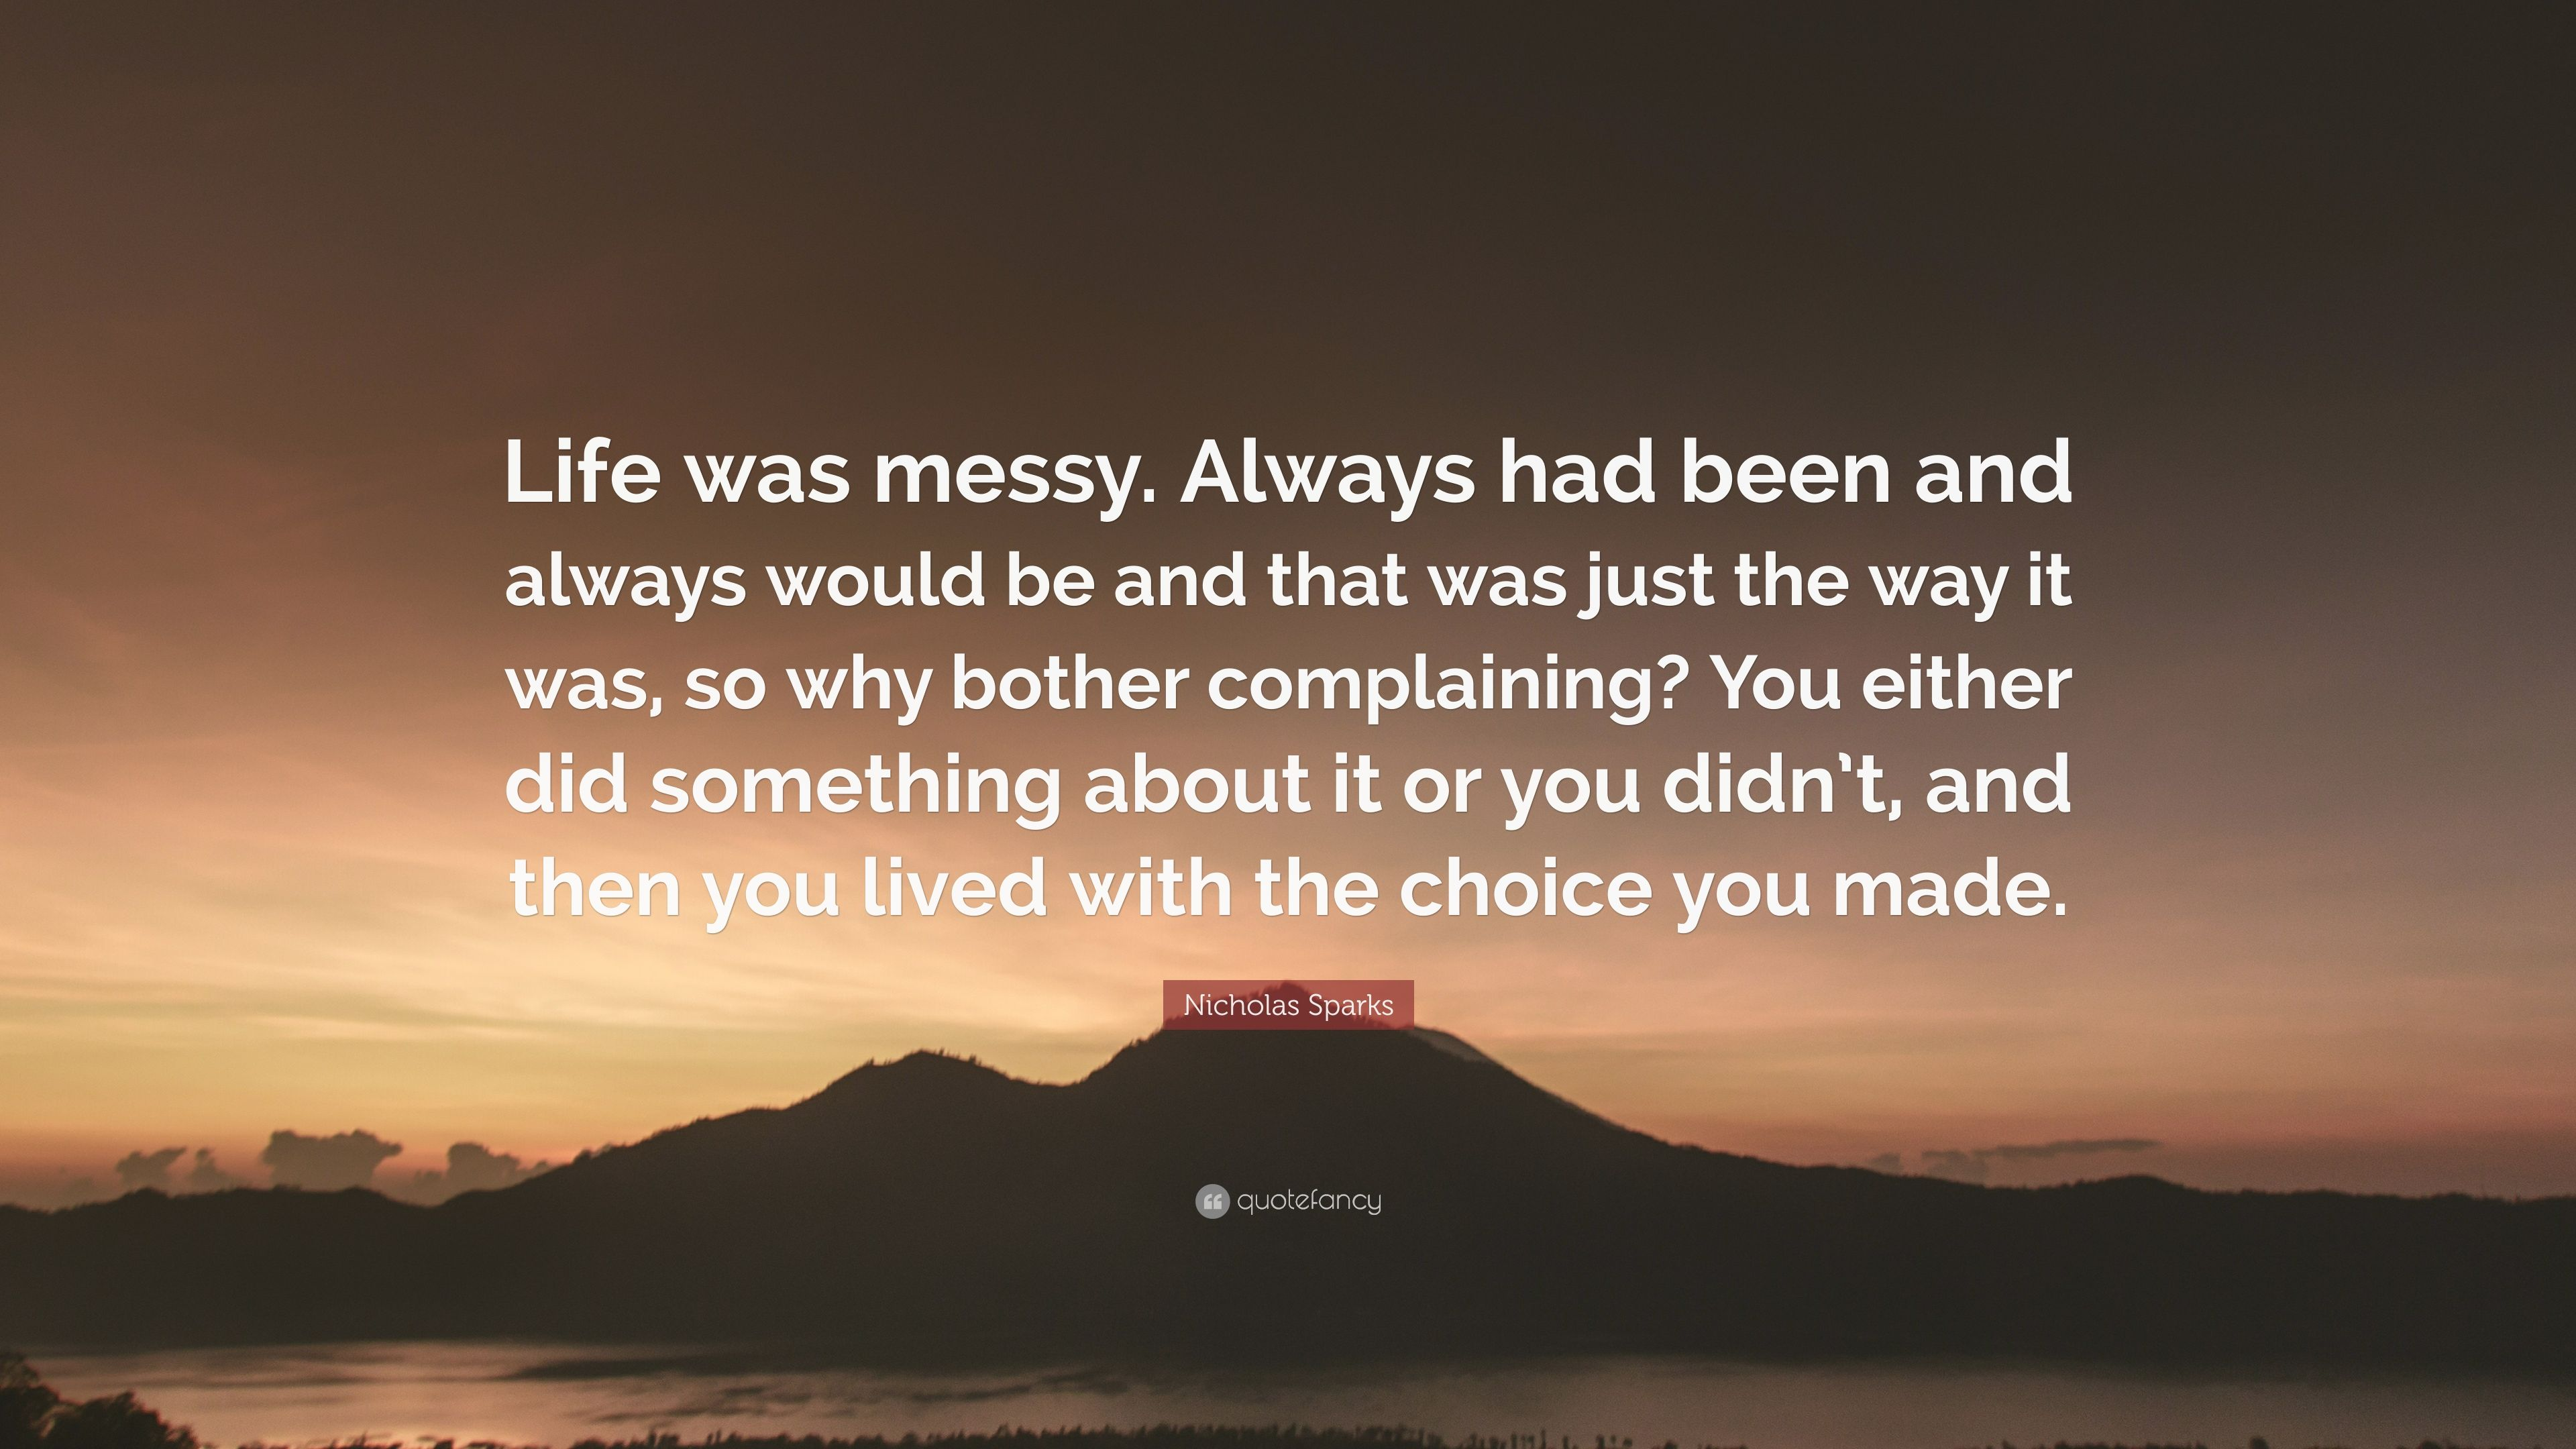 Nicholas Sparks Quote Life Was Messy Always Had Been And Always